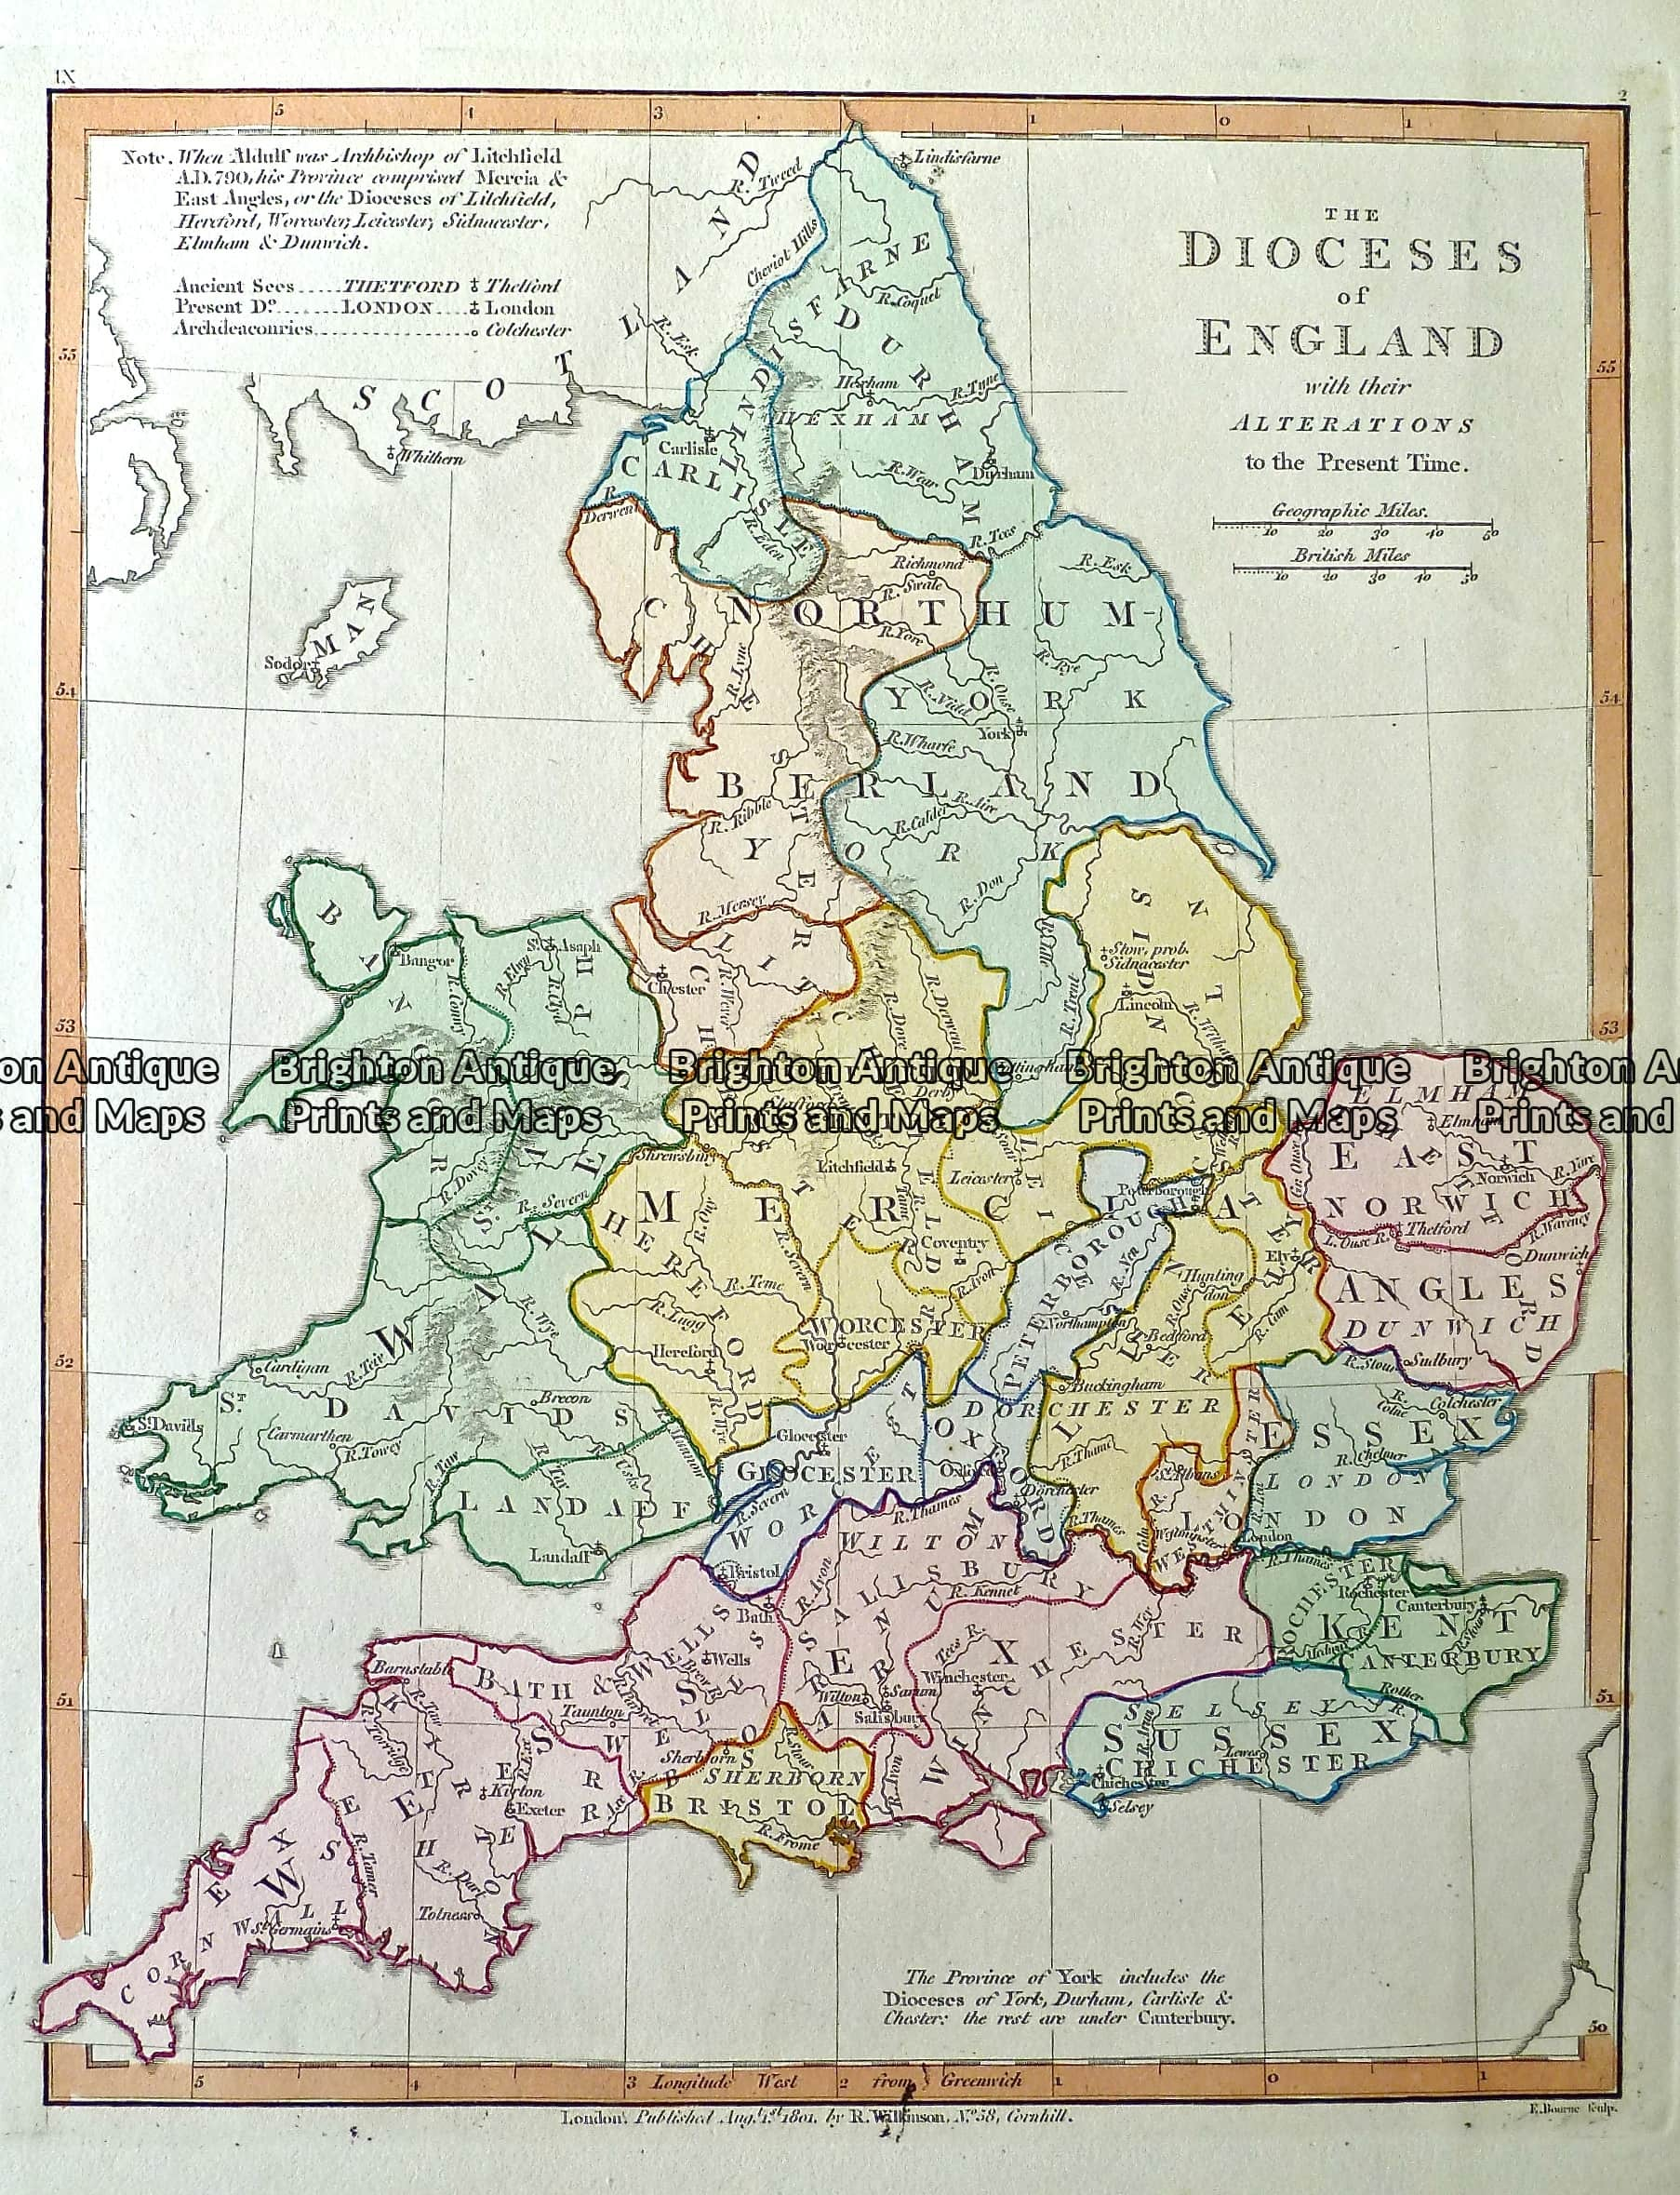 Antique Map 232 104 Dioceses Of England By Wilkinson C 1830